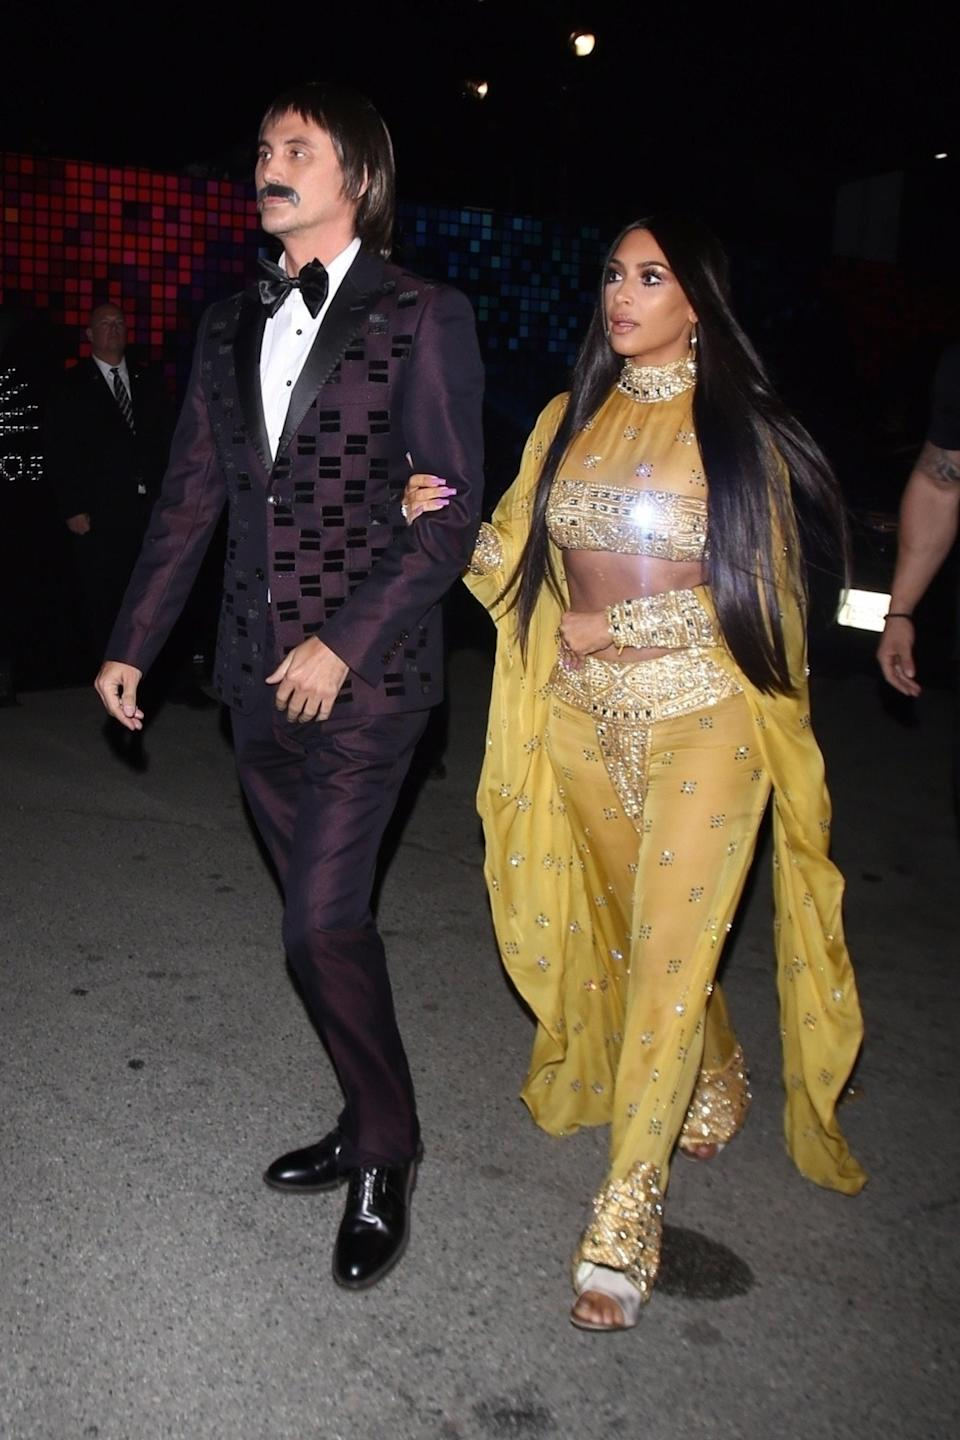 """<p>Jonathan Cheban is the Sonny to Kim's Cher. The BFFs dressed as the iconic duo for the Casamigos Annual Halloween Party, channeling the pair's 1973 Oscars look. The reality star's getup was Cher-approved. """"Woke up to see you are me 4 [Halloween],"""" Cher tweeted at Kardashian. """"You look BEAUTIFUL little Armenian sister."""" (Photo: Backgrid) </p>"""